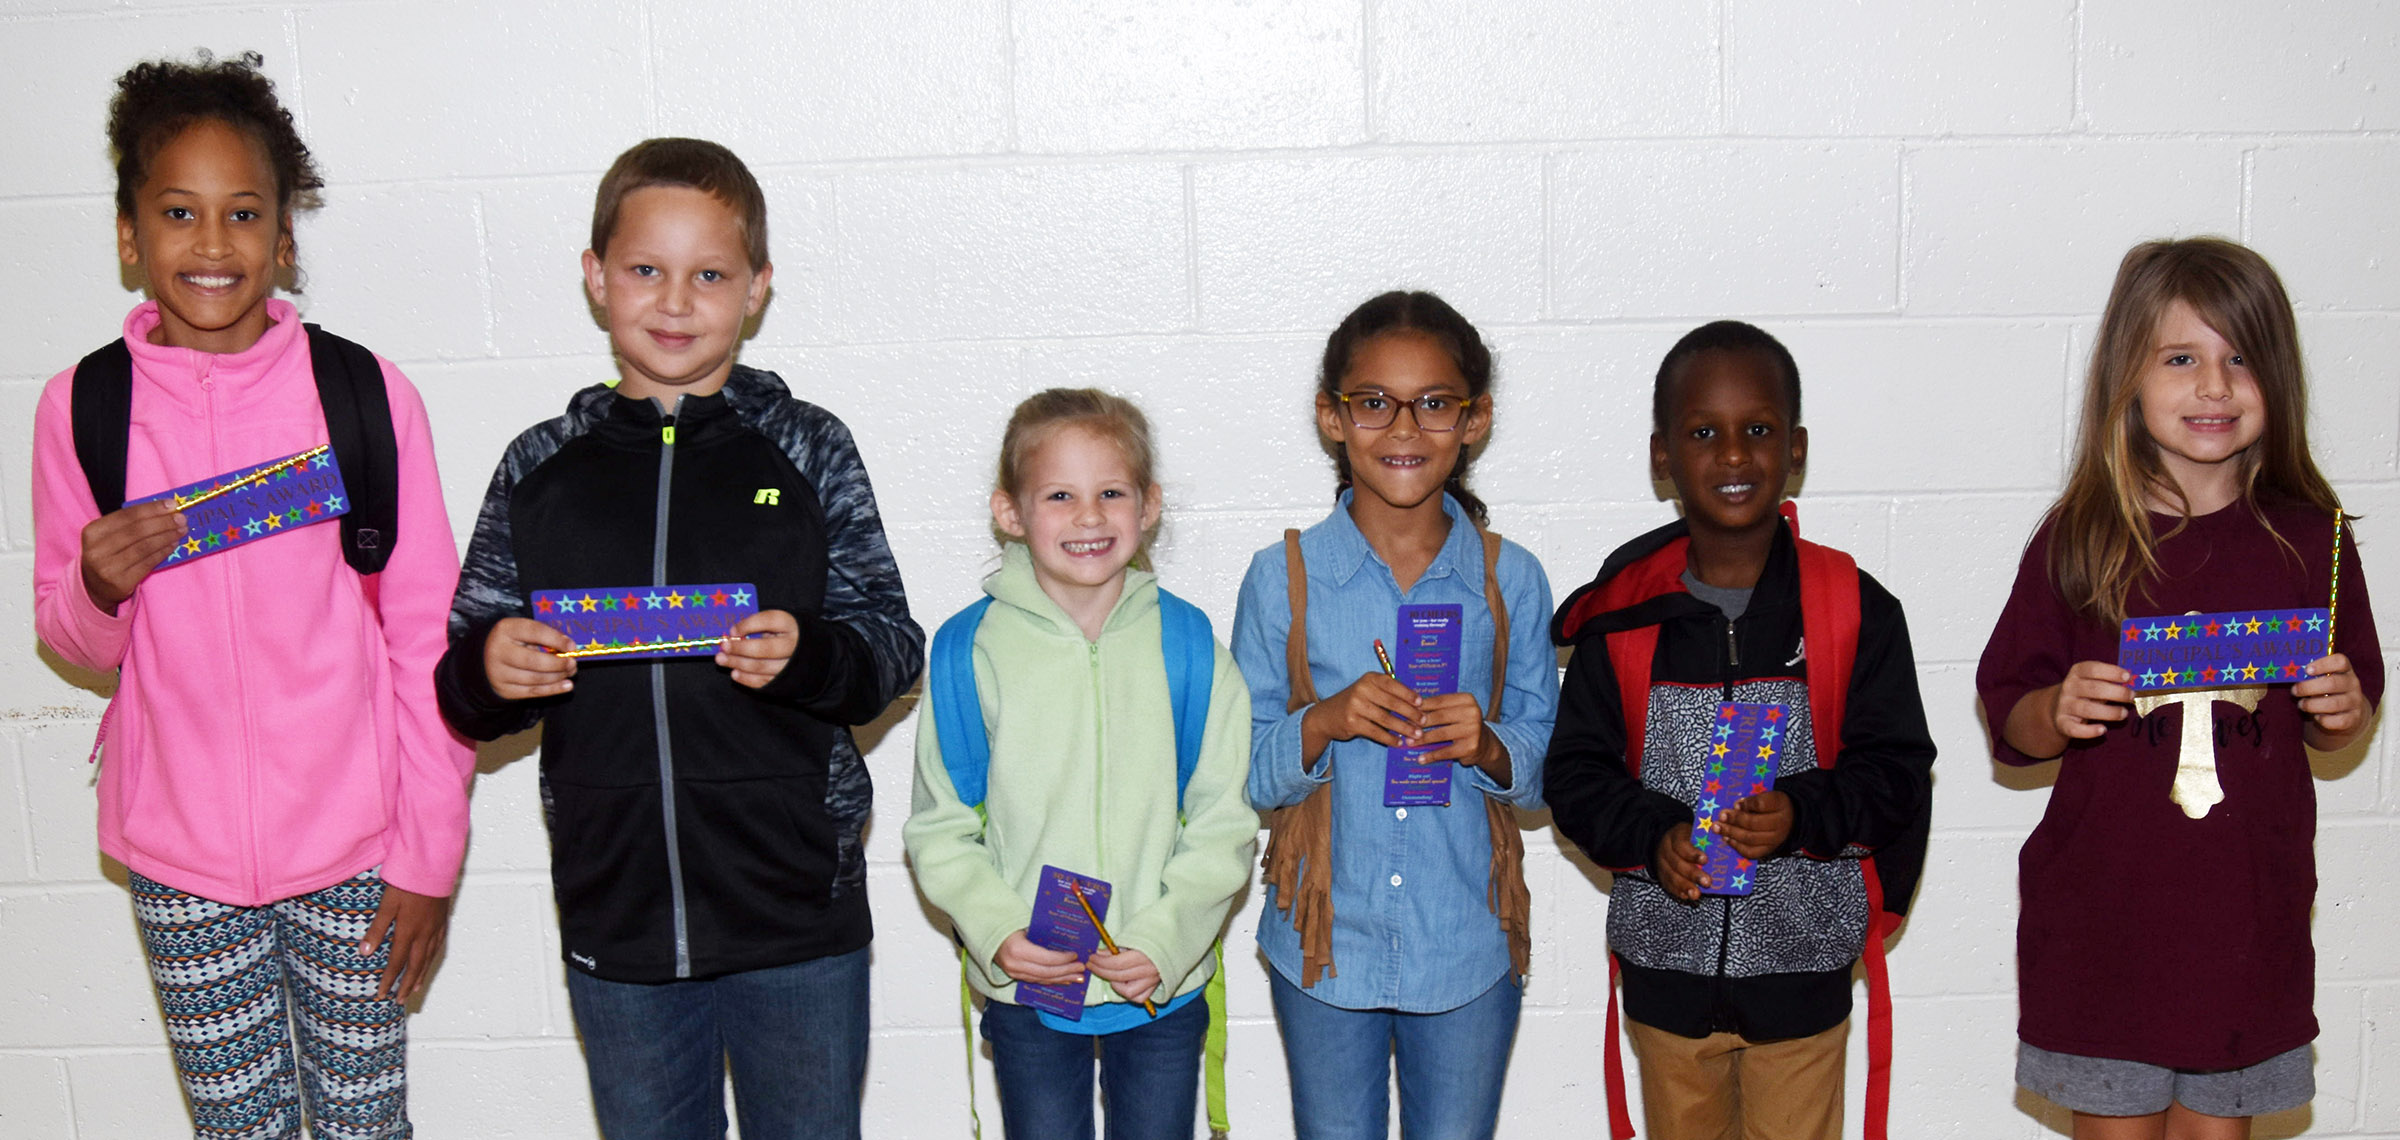 From left are fourth-grader Yazlyn Sutton, fifth-grader Jake Thompson, first-grader Riley Bright, second-grader Marlee Dickens, kindergartener TuReal Baxter and third-grader Kenady Hayes.